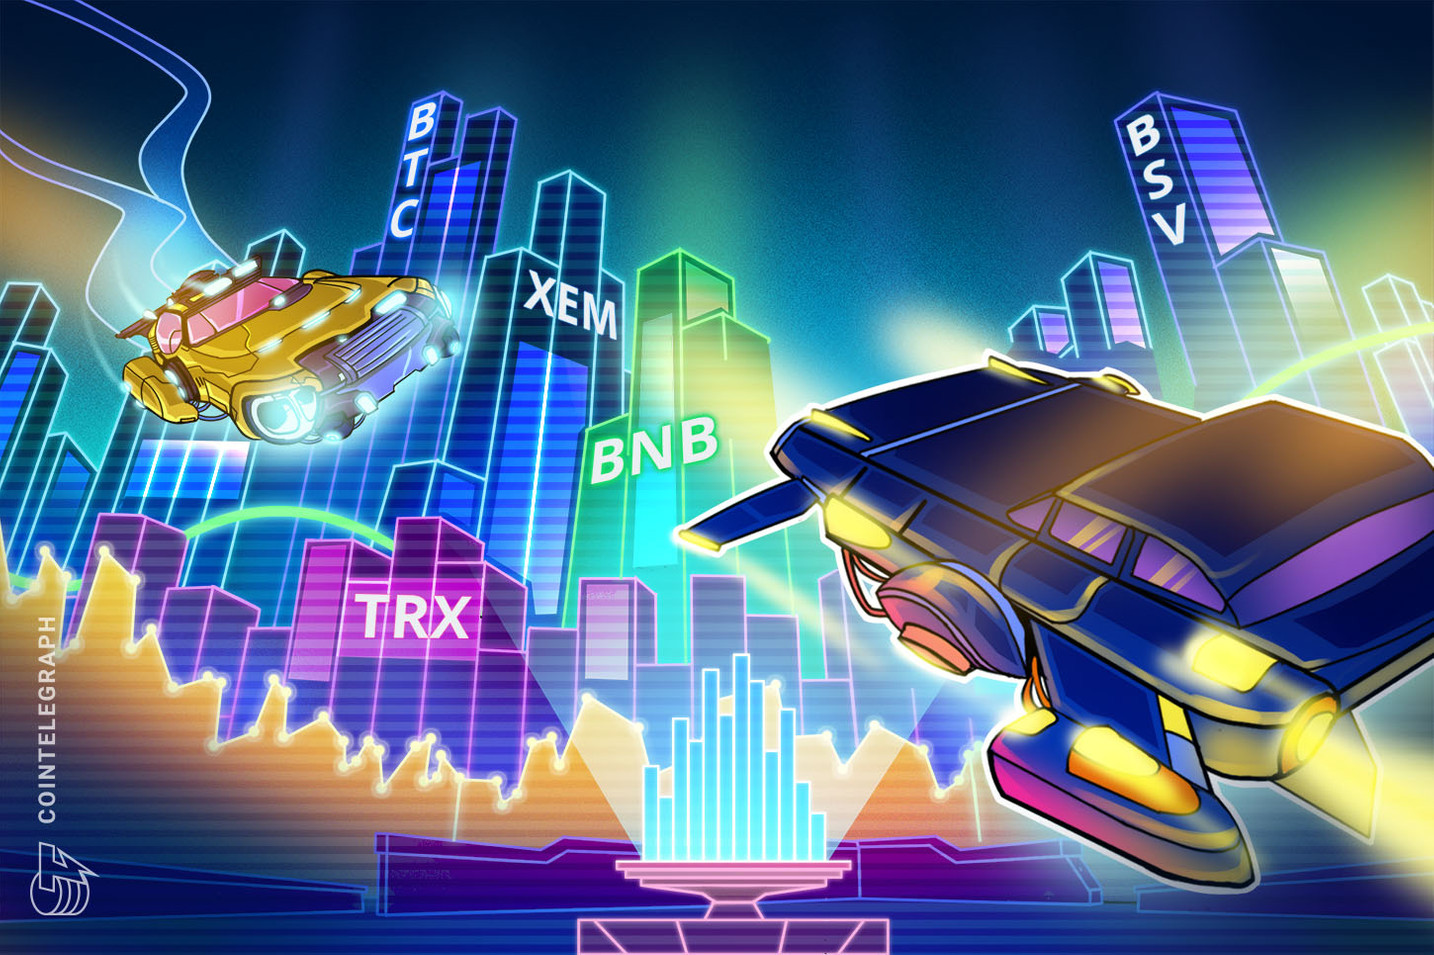 Top 5 Crypto Performers Overview: BSV, XEM, TRX, BNB, BTC